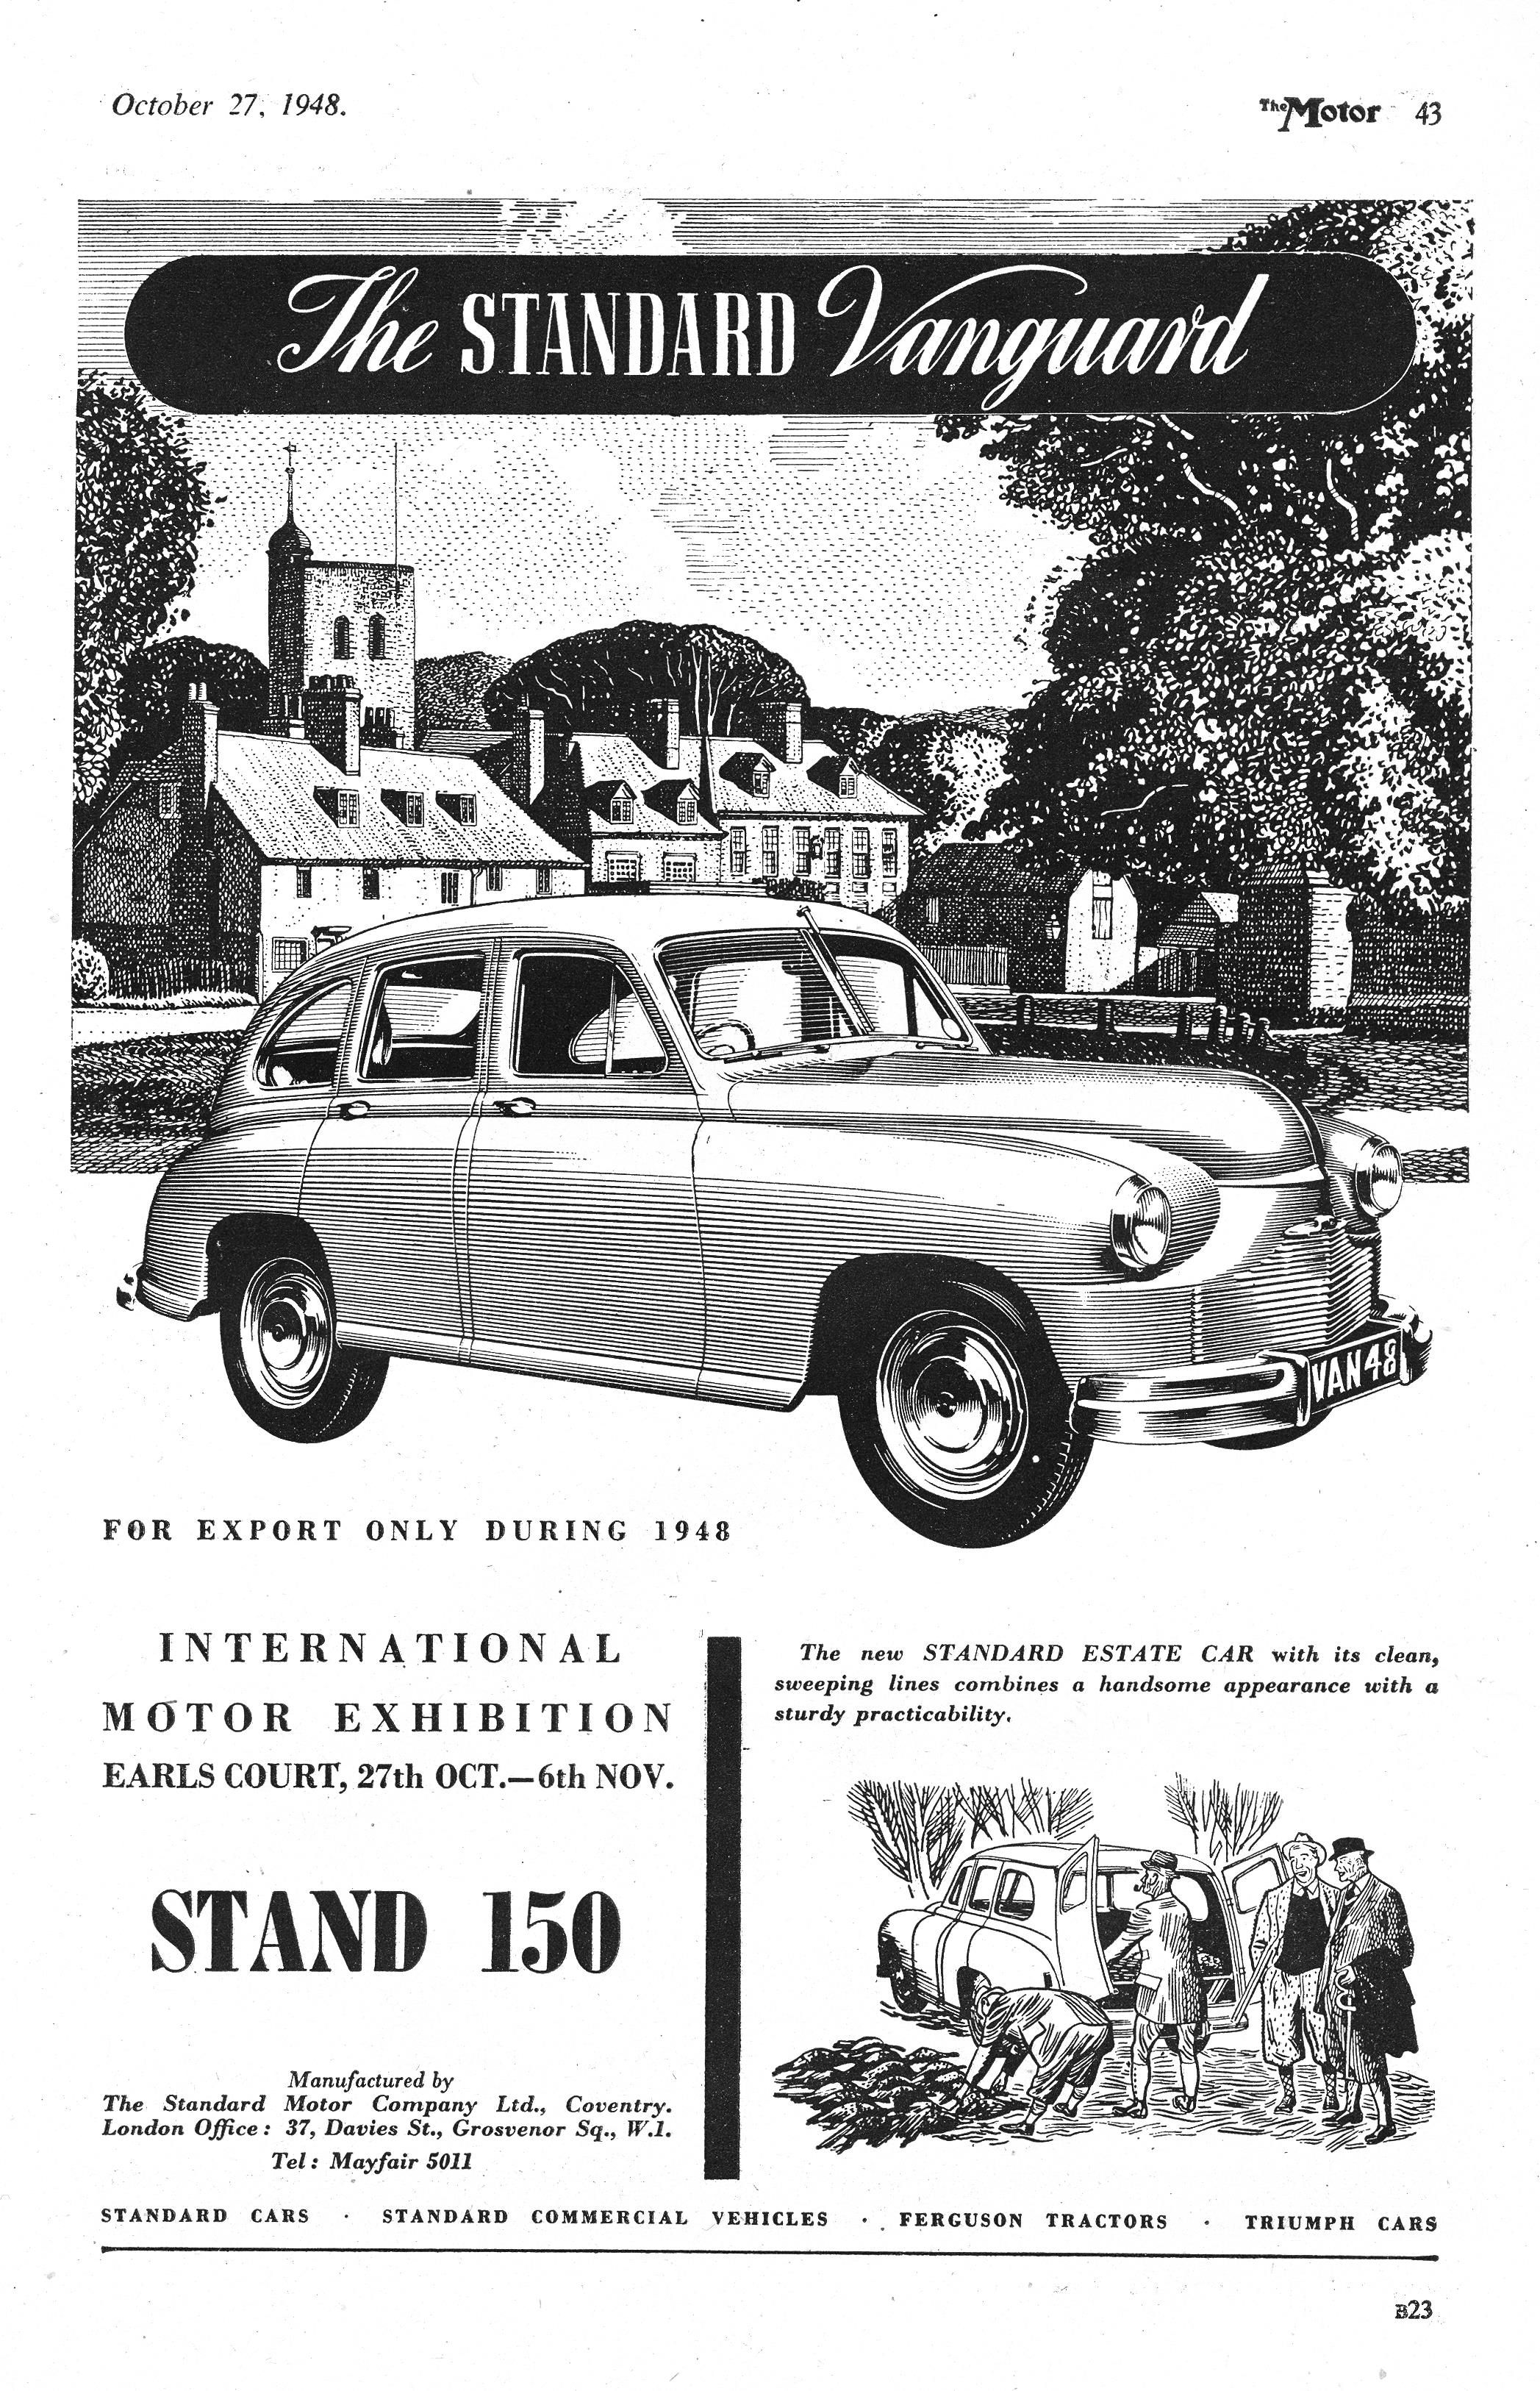 Standard Vanguard Motor Car Autocar Advert 1948. My 1956 TR2 used ...